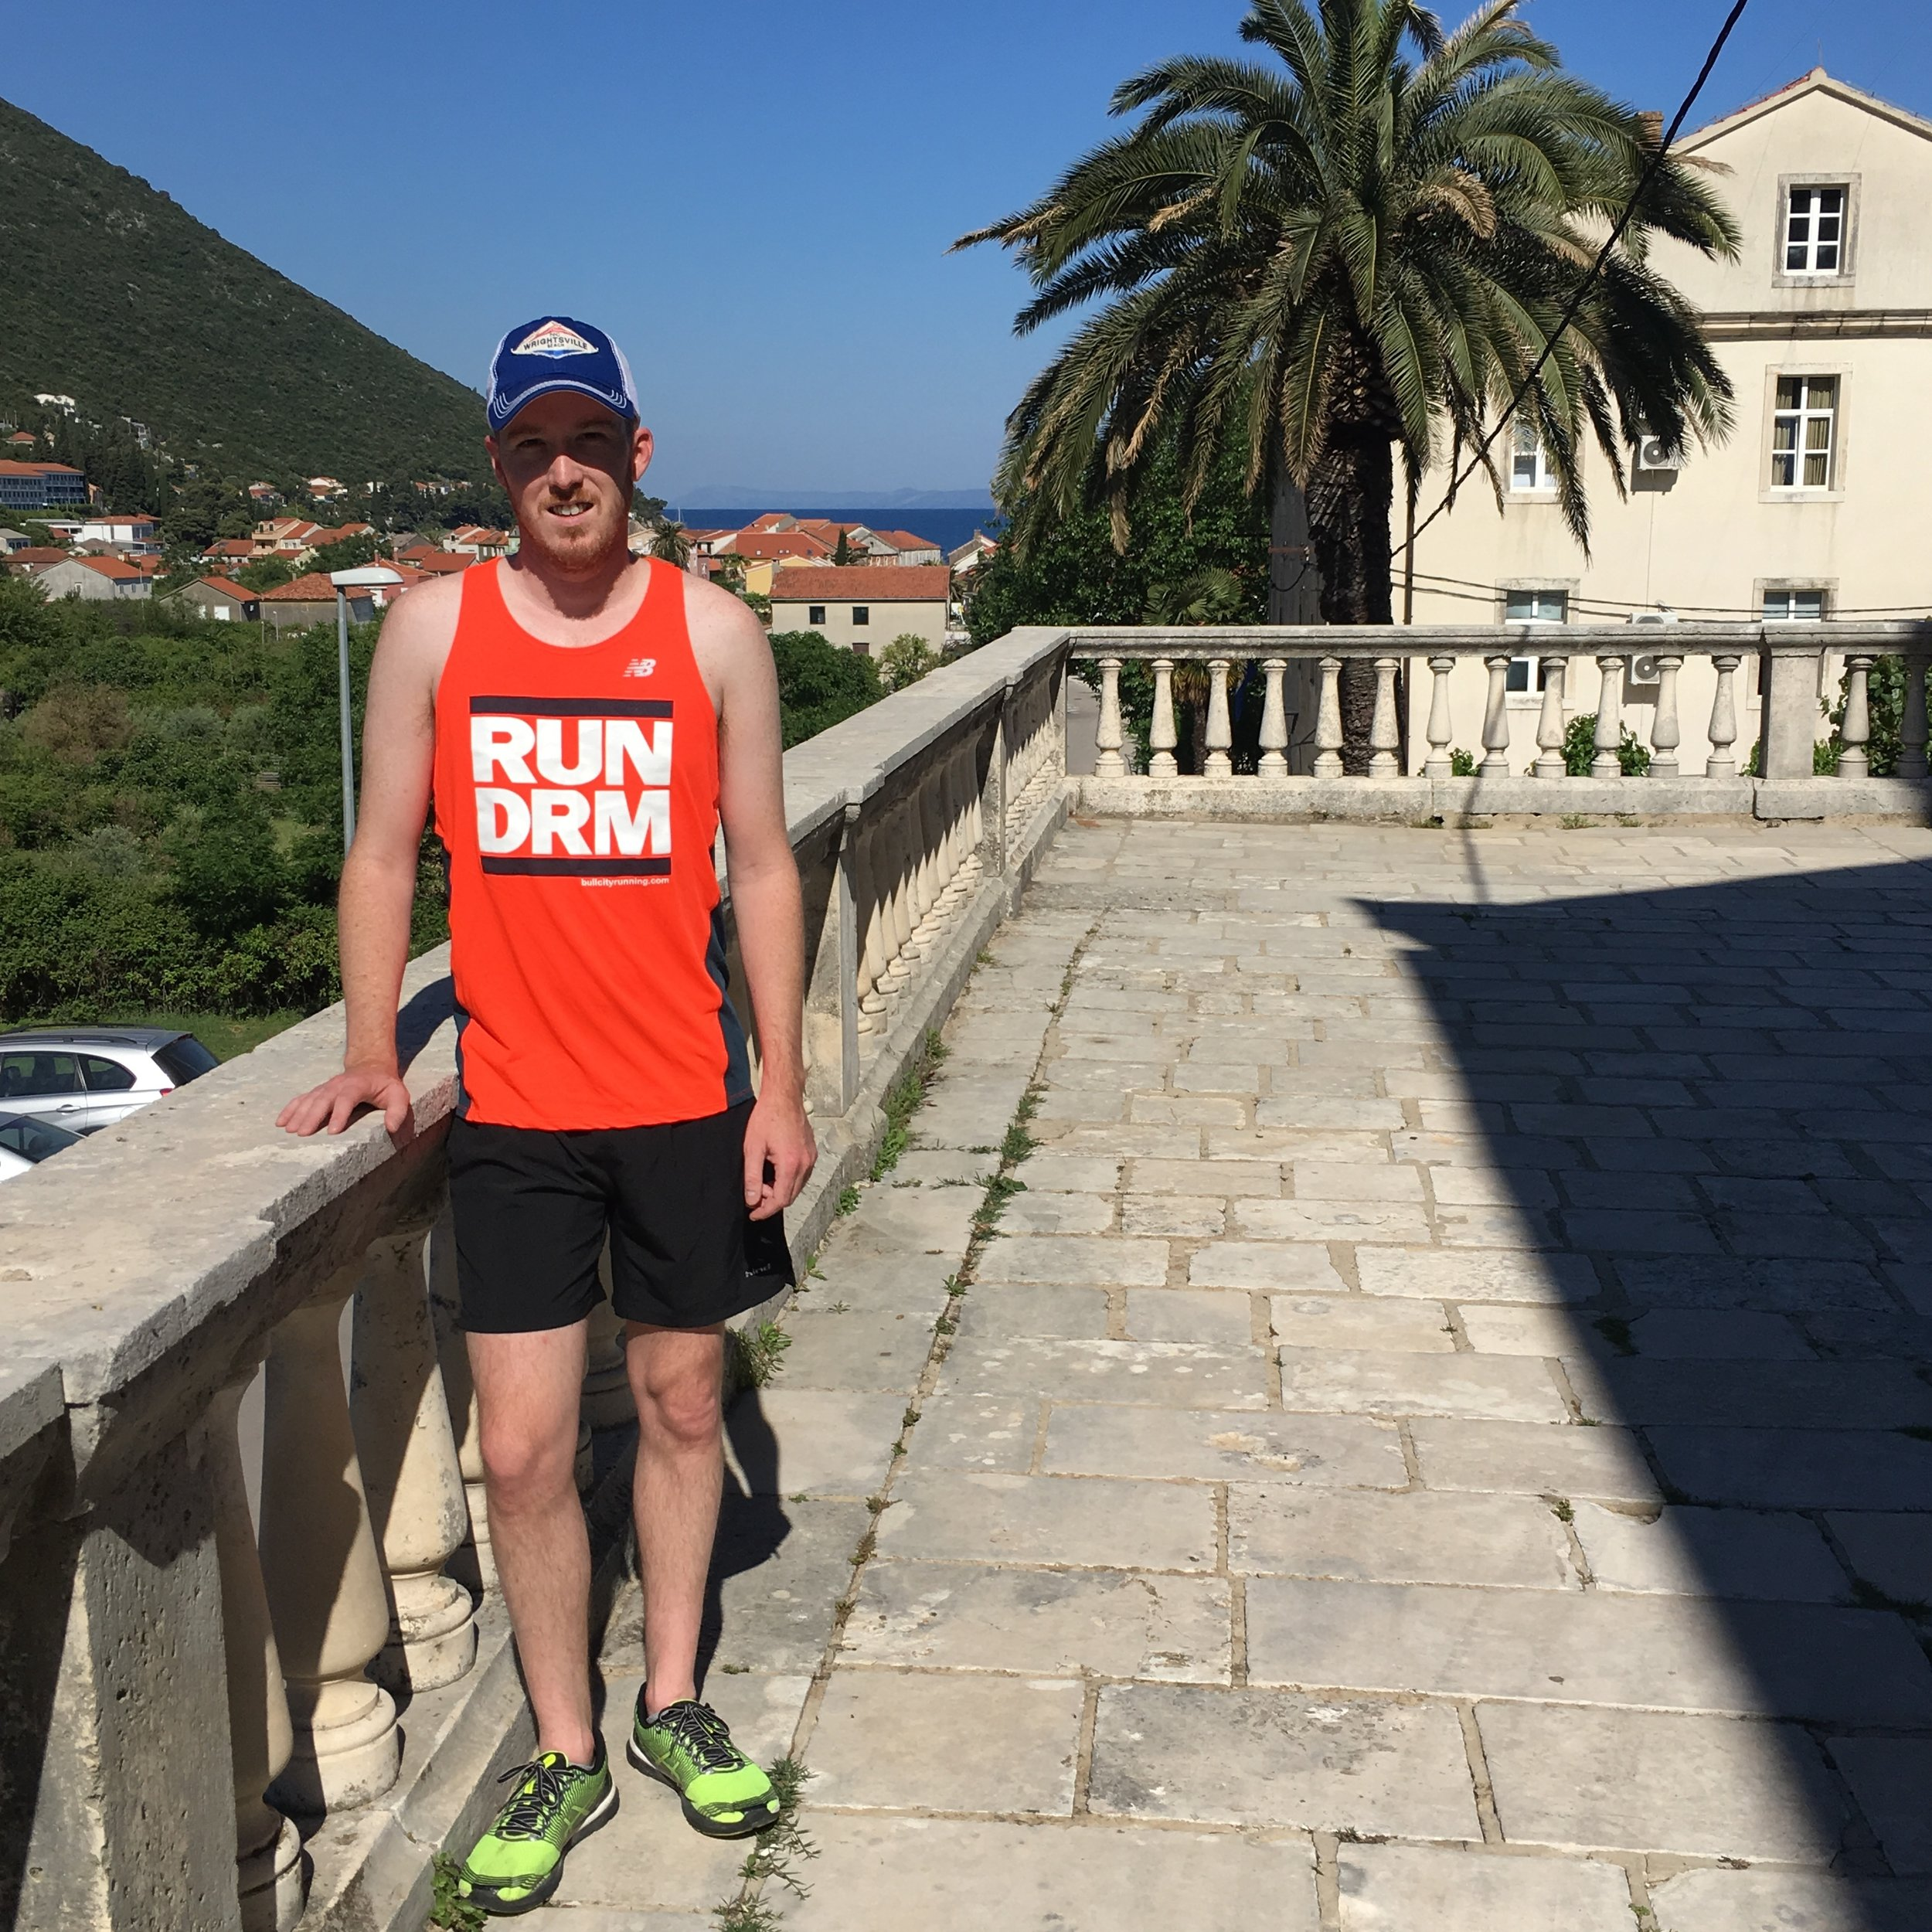 Post-run in Trpanj, Croatia.